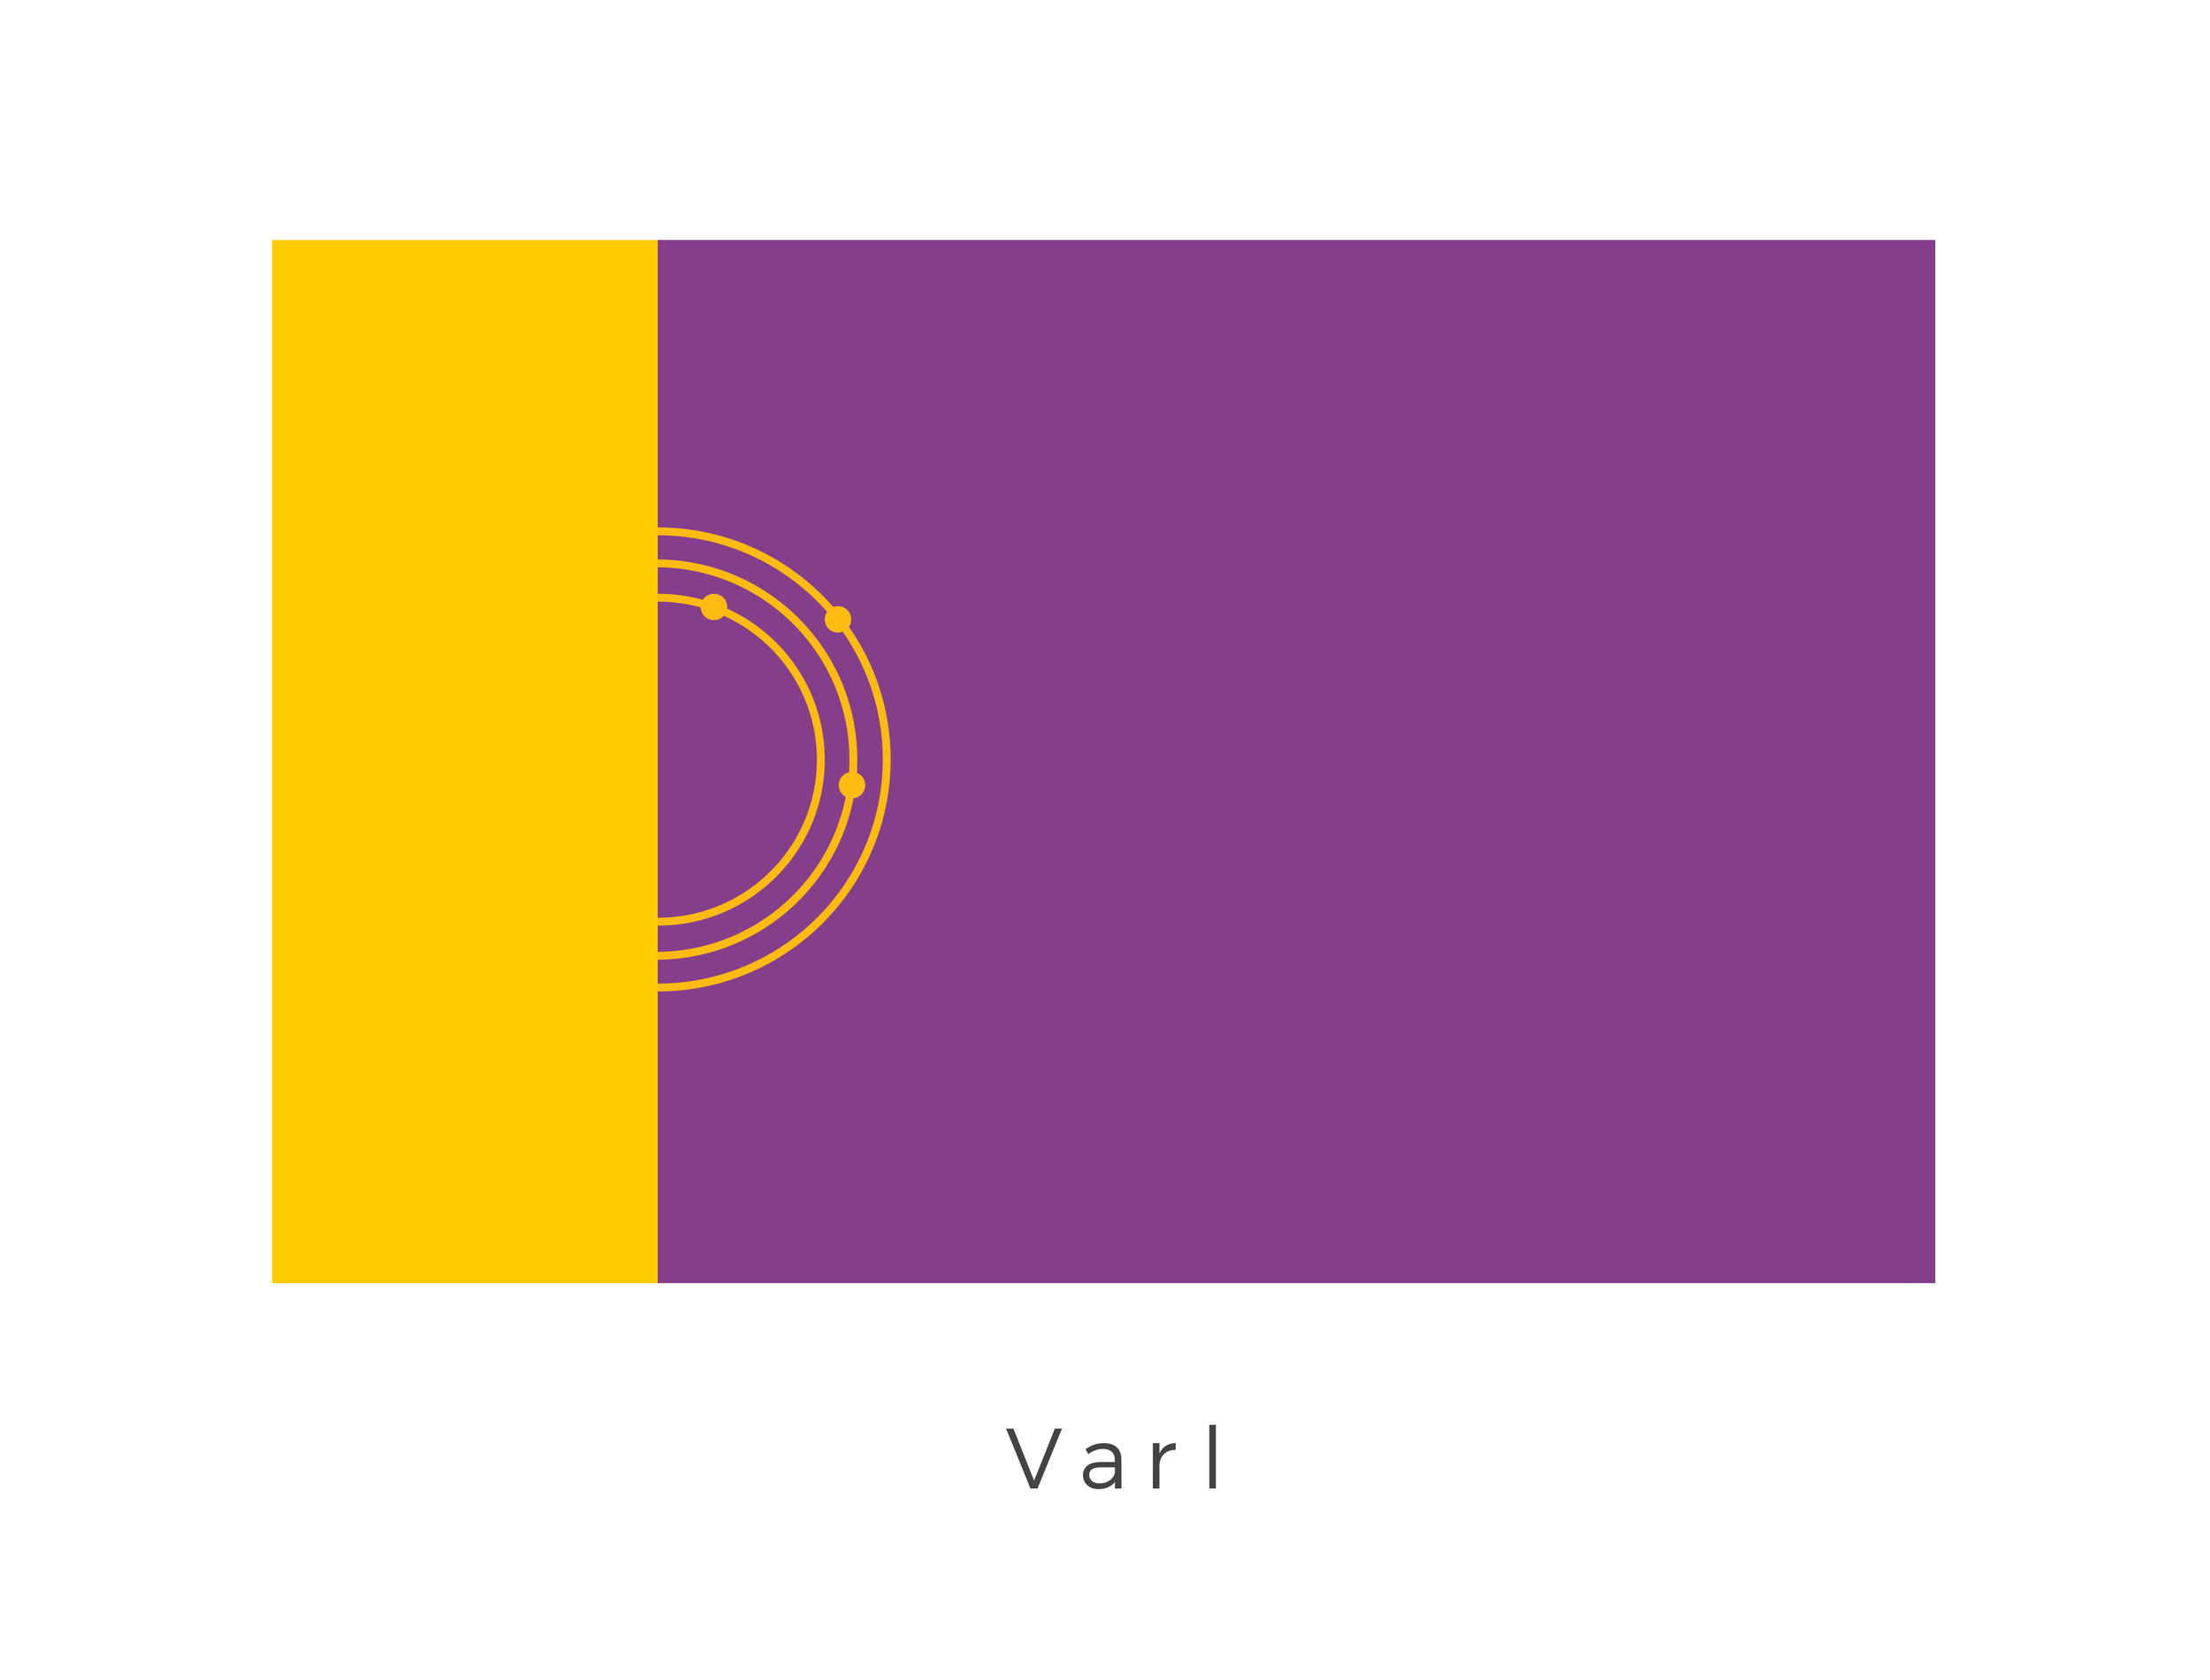 Varl  was the original home world of the Hutts, t'landa Til, and possibly the Rybets. According to Hutt legend, it was devastated in a cataclysm that vaporized its atmosphere and obliterated its moons, as well as all other planets in its star system. The flag is similar to that of the other Hutt planet Nal Hutta, with the purple and gold strip being the early colours of the Hutts. These later changed to red, white and black. The three rings of gold represent the mythology the Hutts created around their creation on the planet.